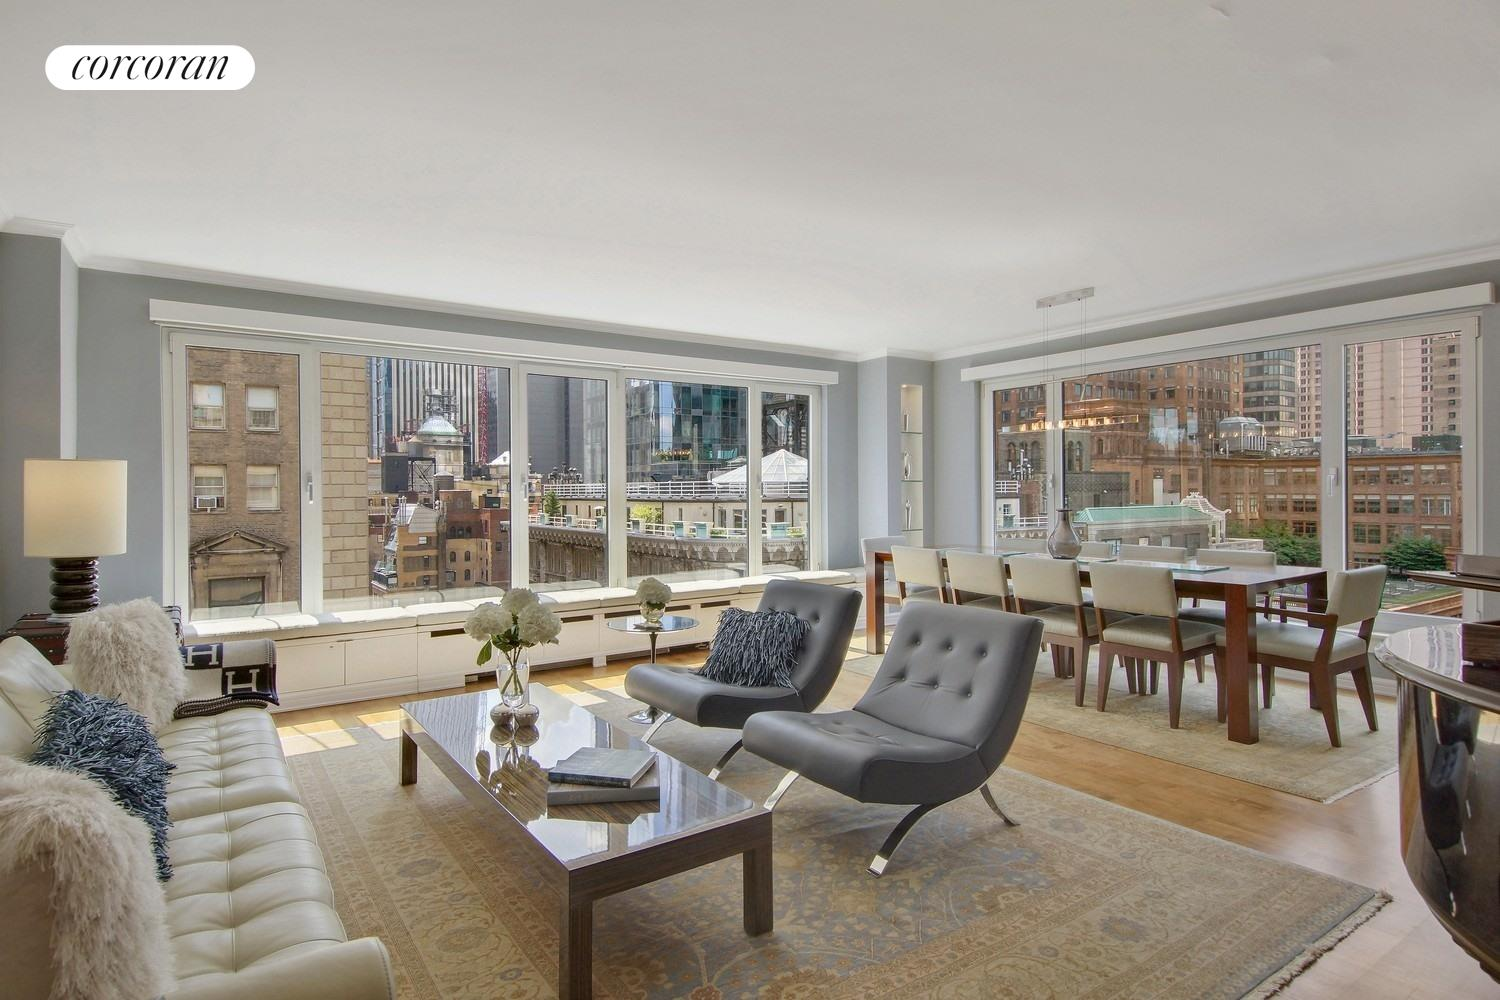 200 Central Park South, 20J, Living Room / Dining Area